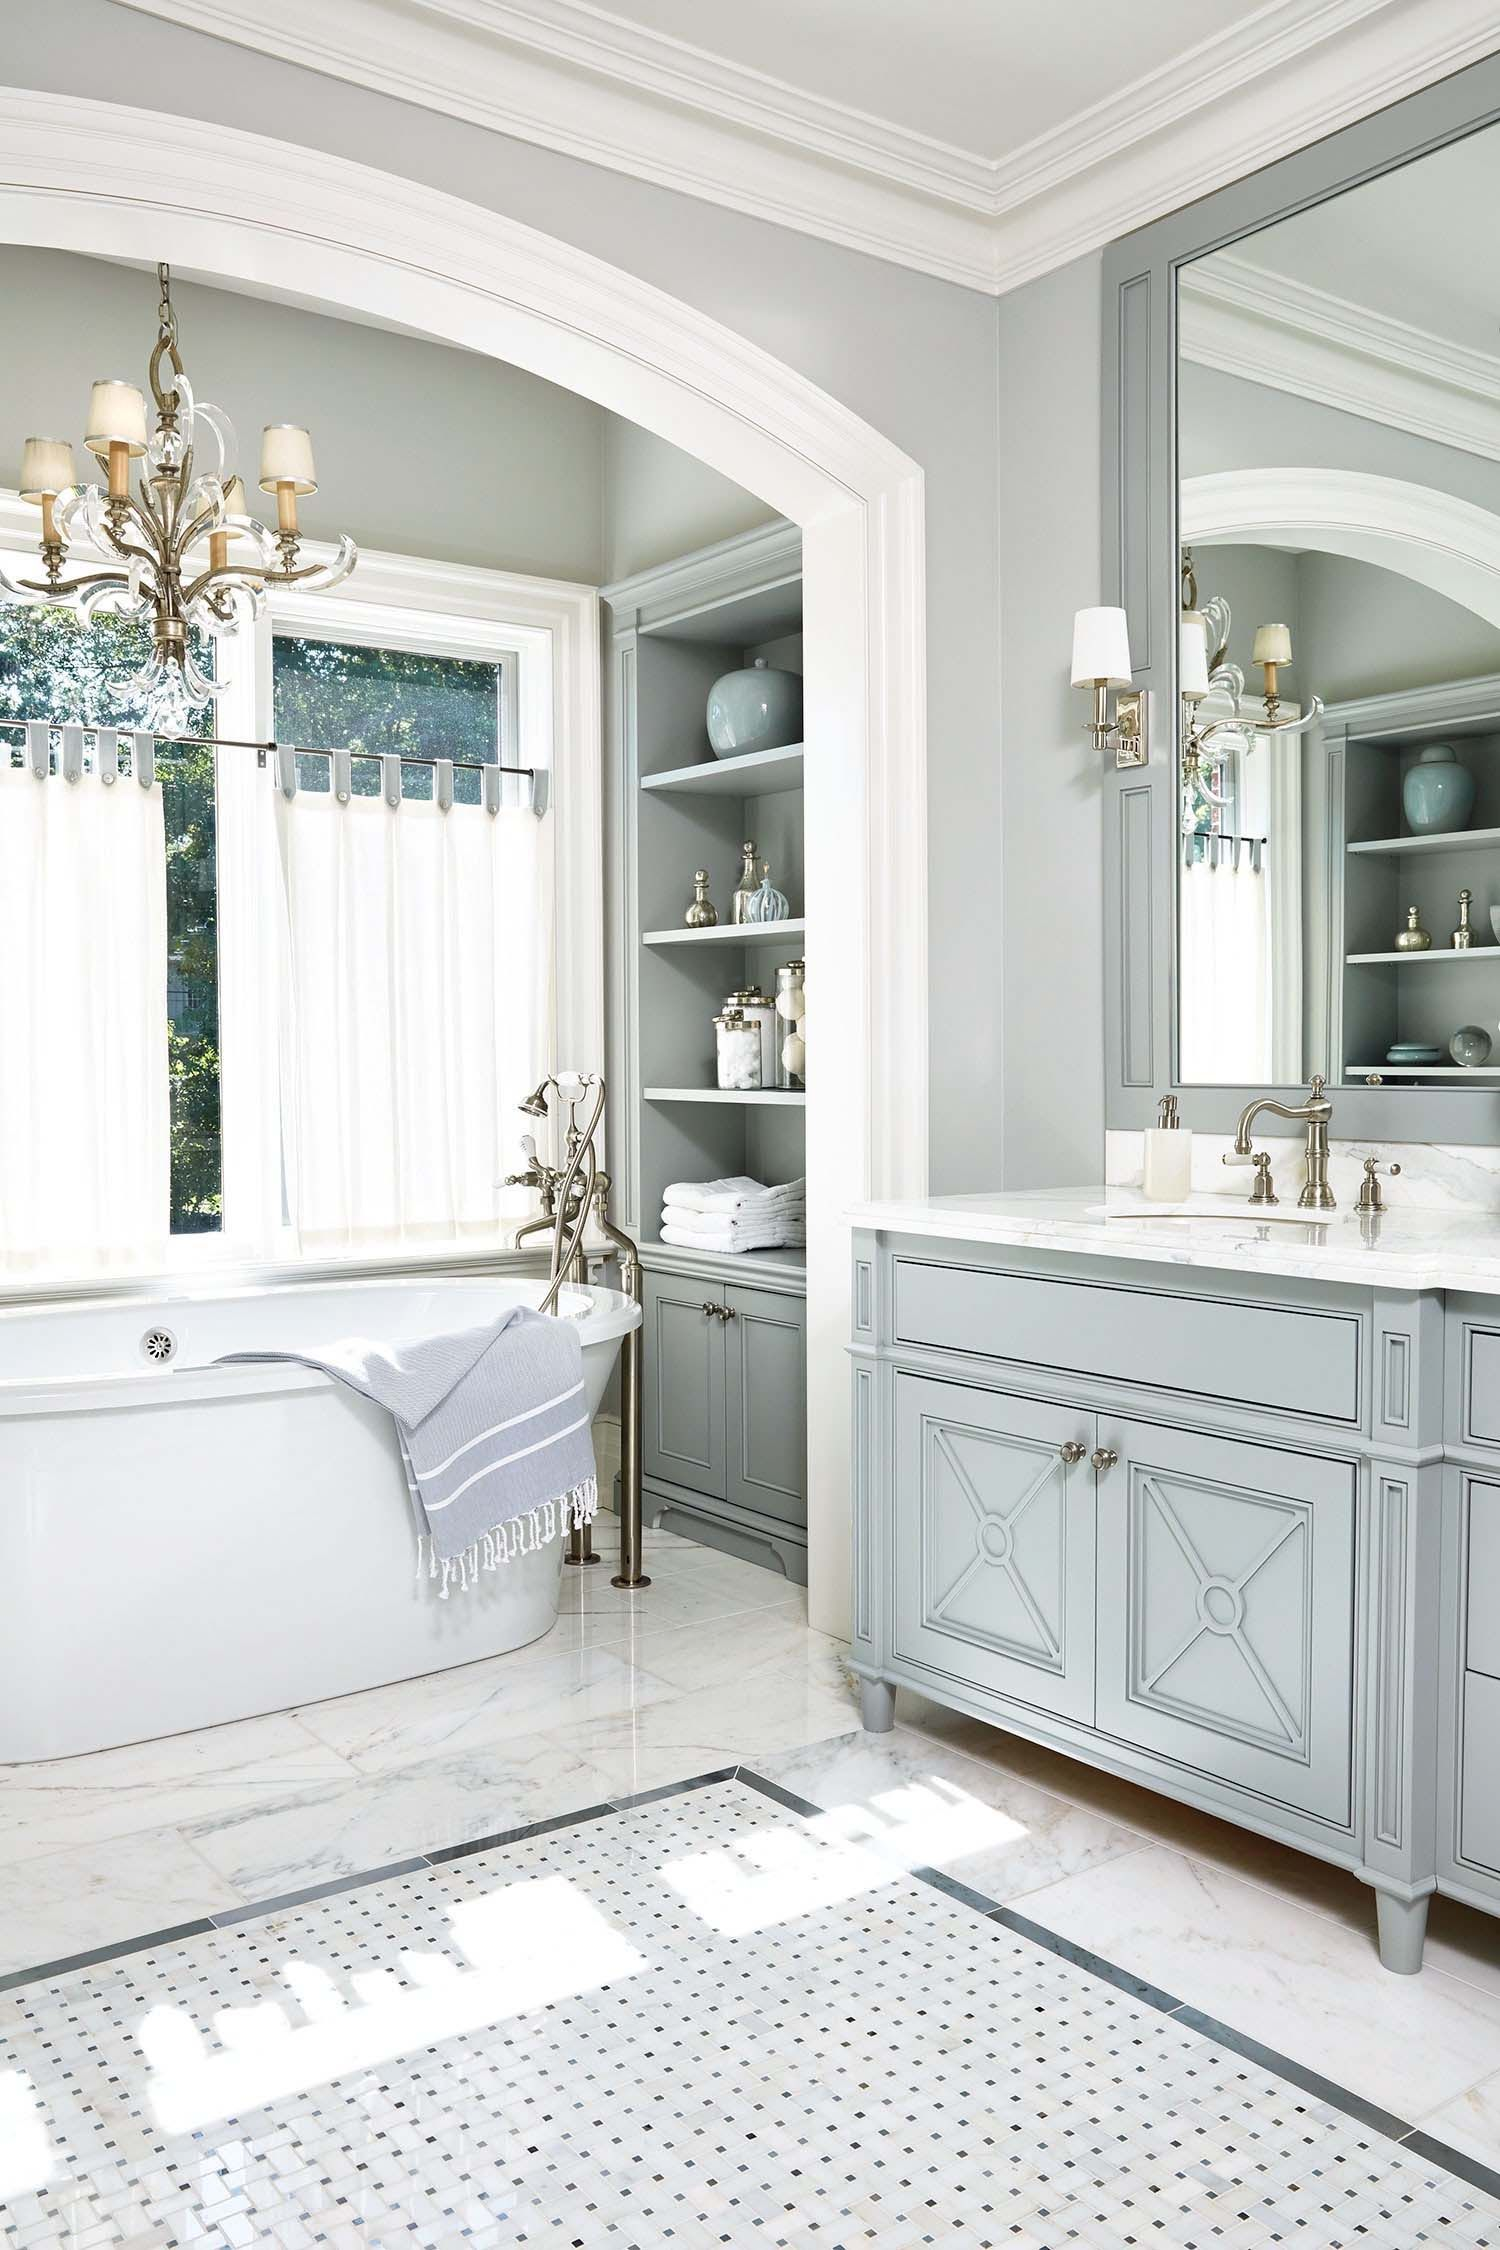 53 Most fabulous traditional style bathroom designs ever | Designer ...